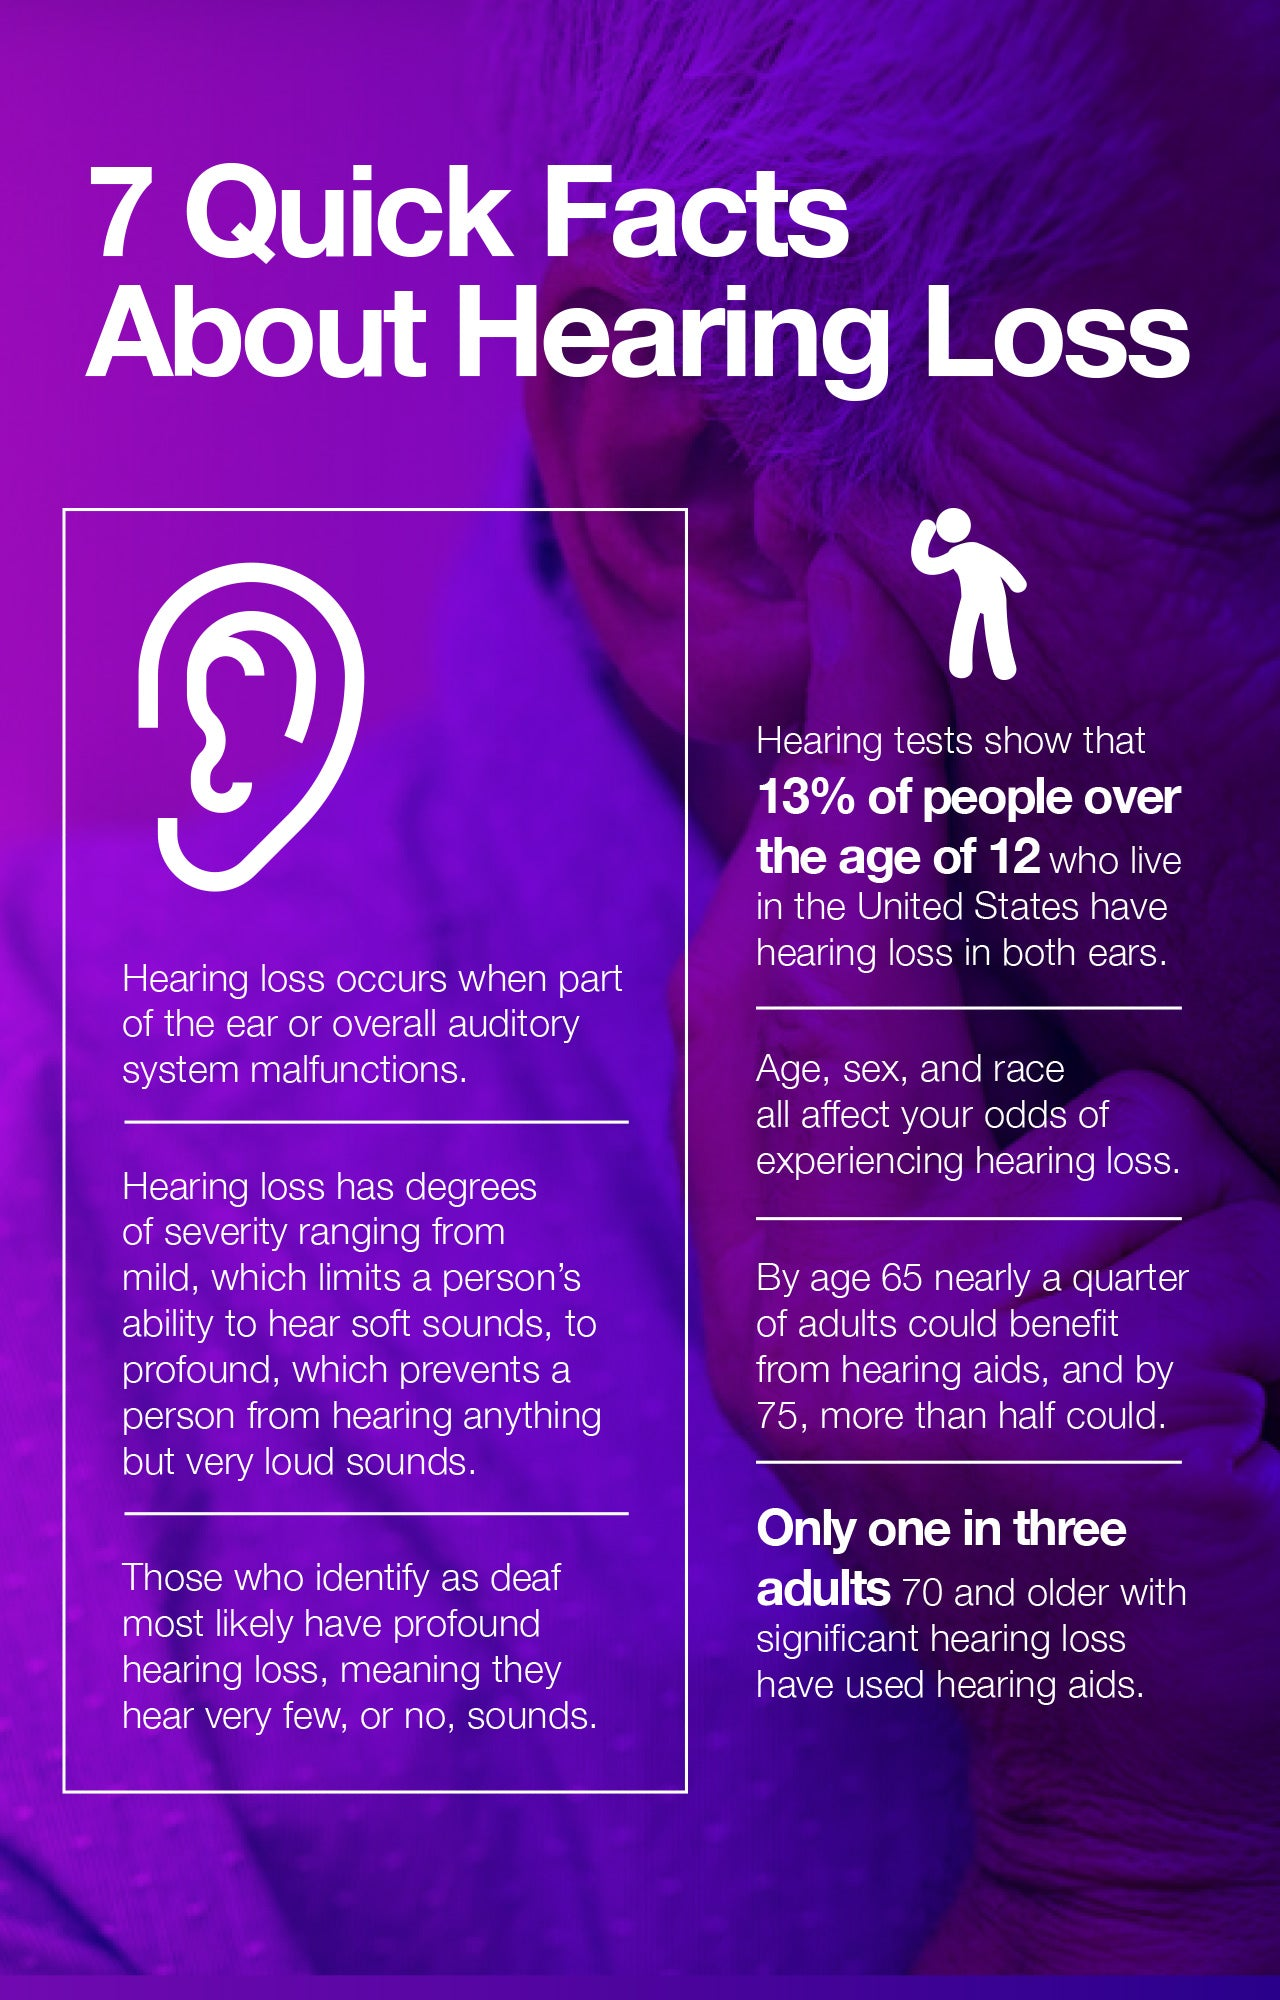 7 Quick Facts About Hearing Loss